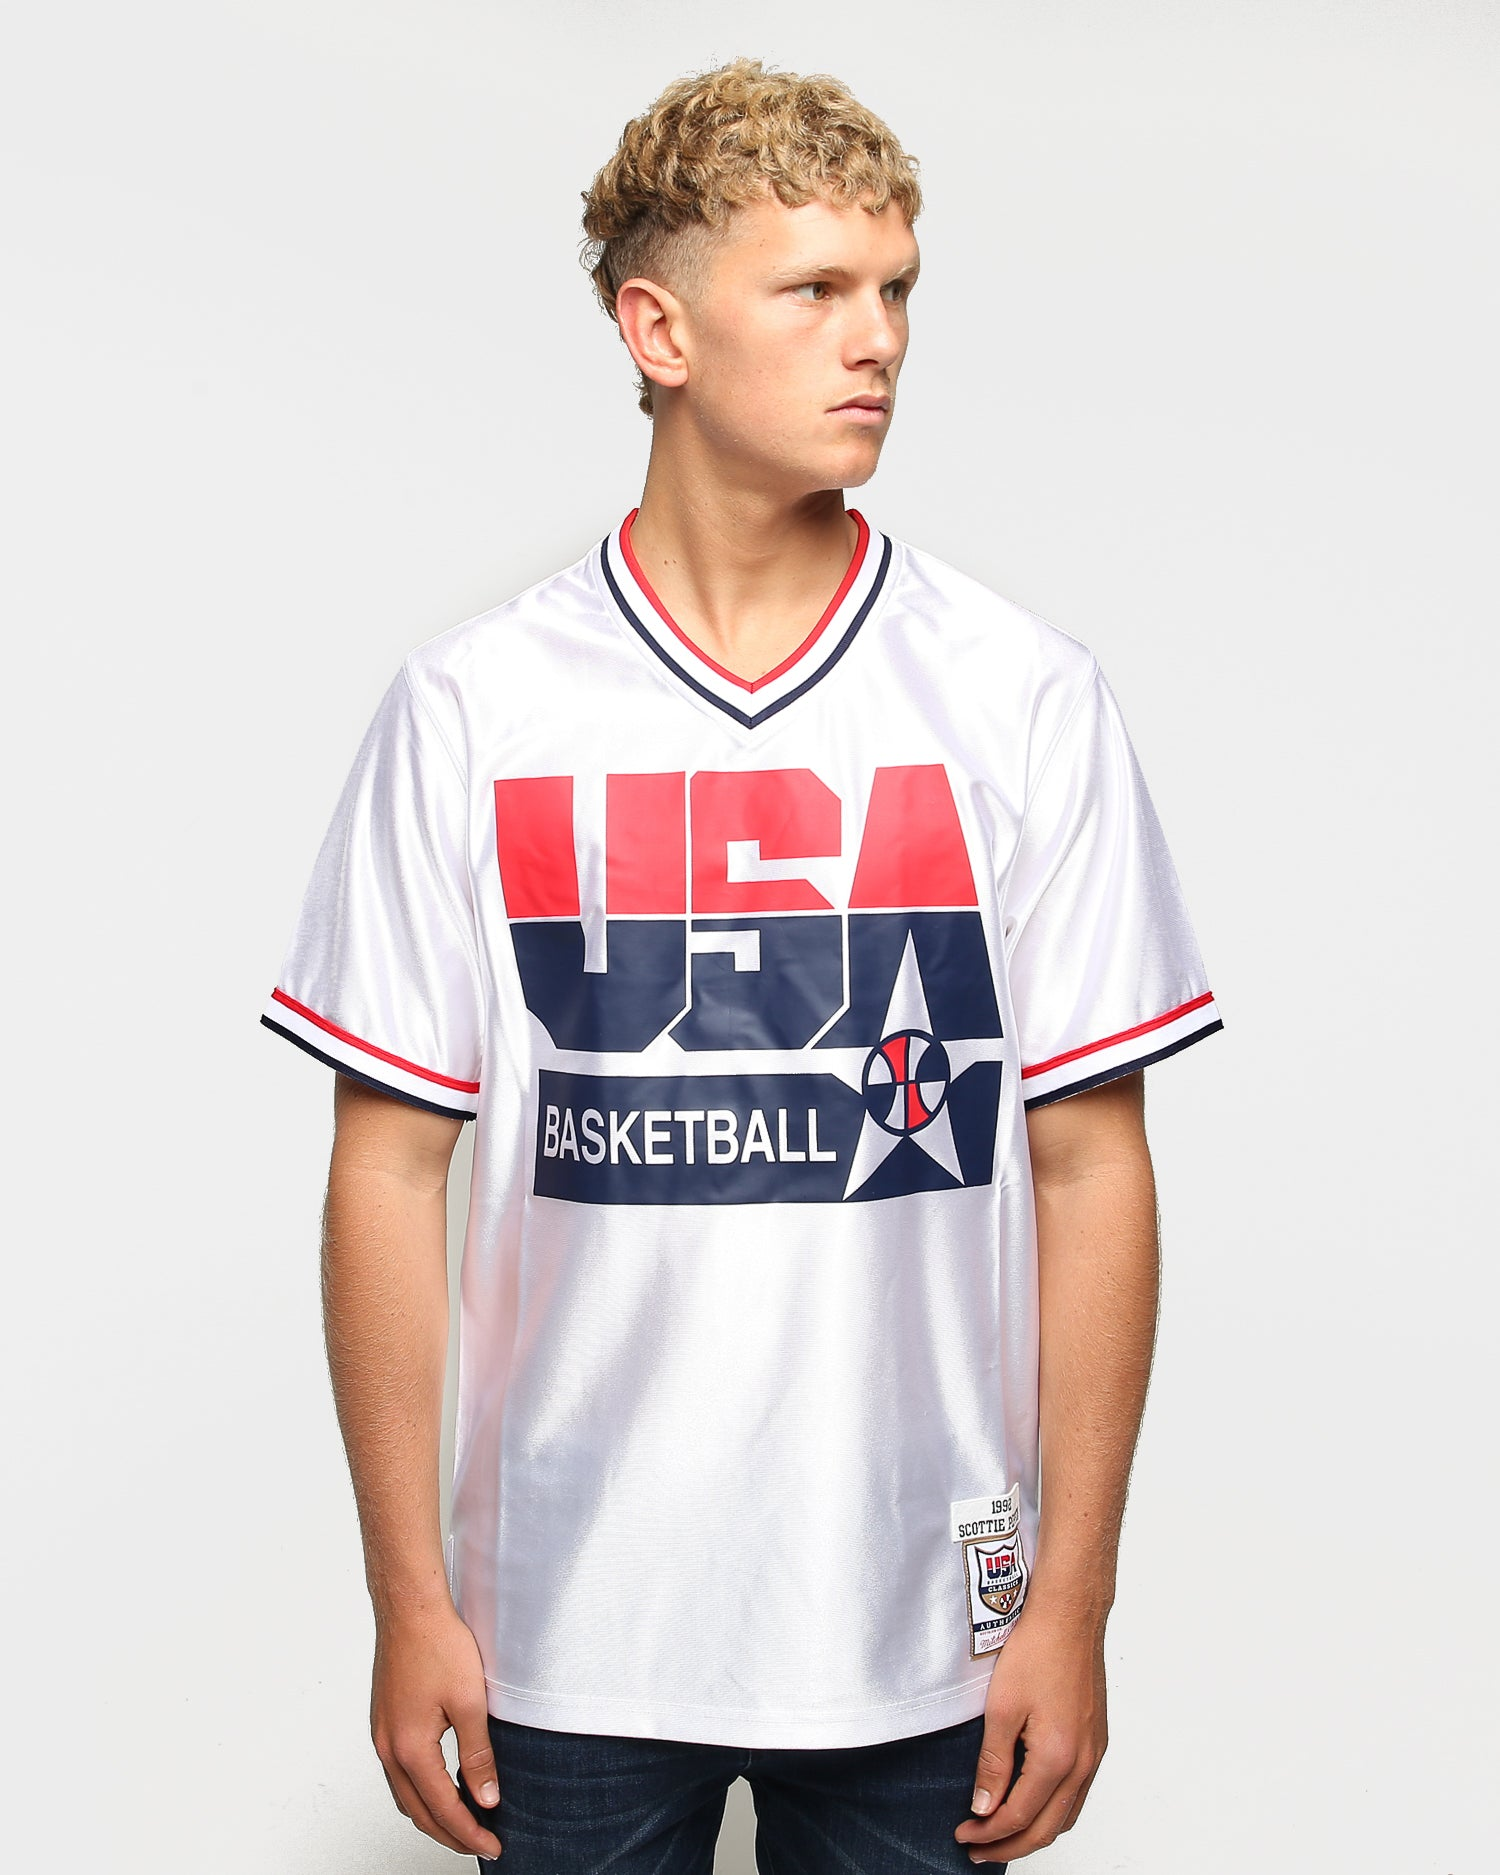 SCOTTIE PIPPEN TEAM USA JERSEY NEW WHITE ANY SIZE